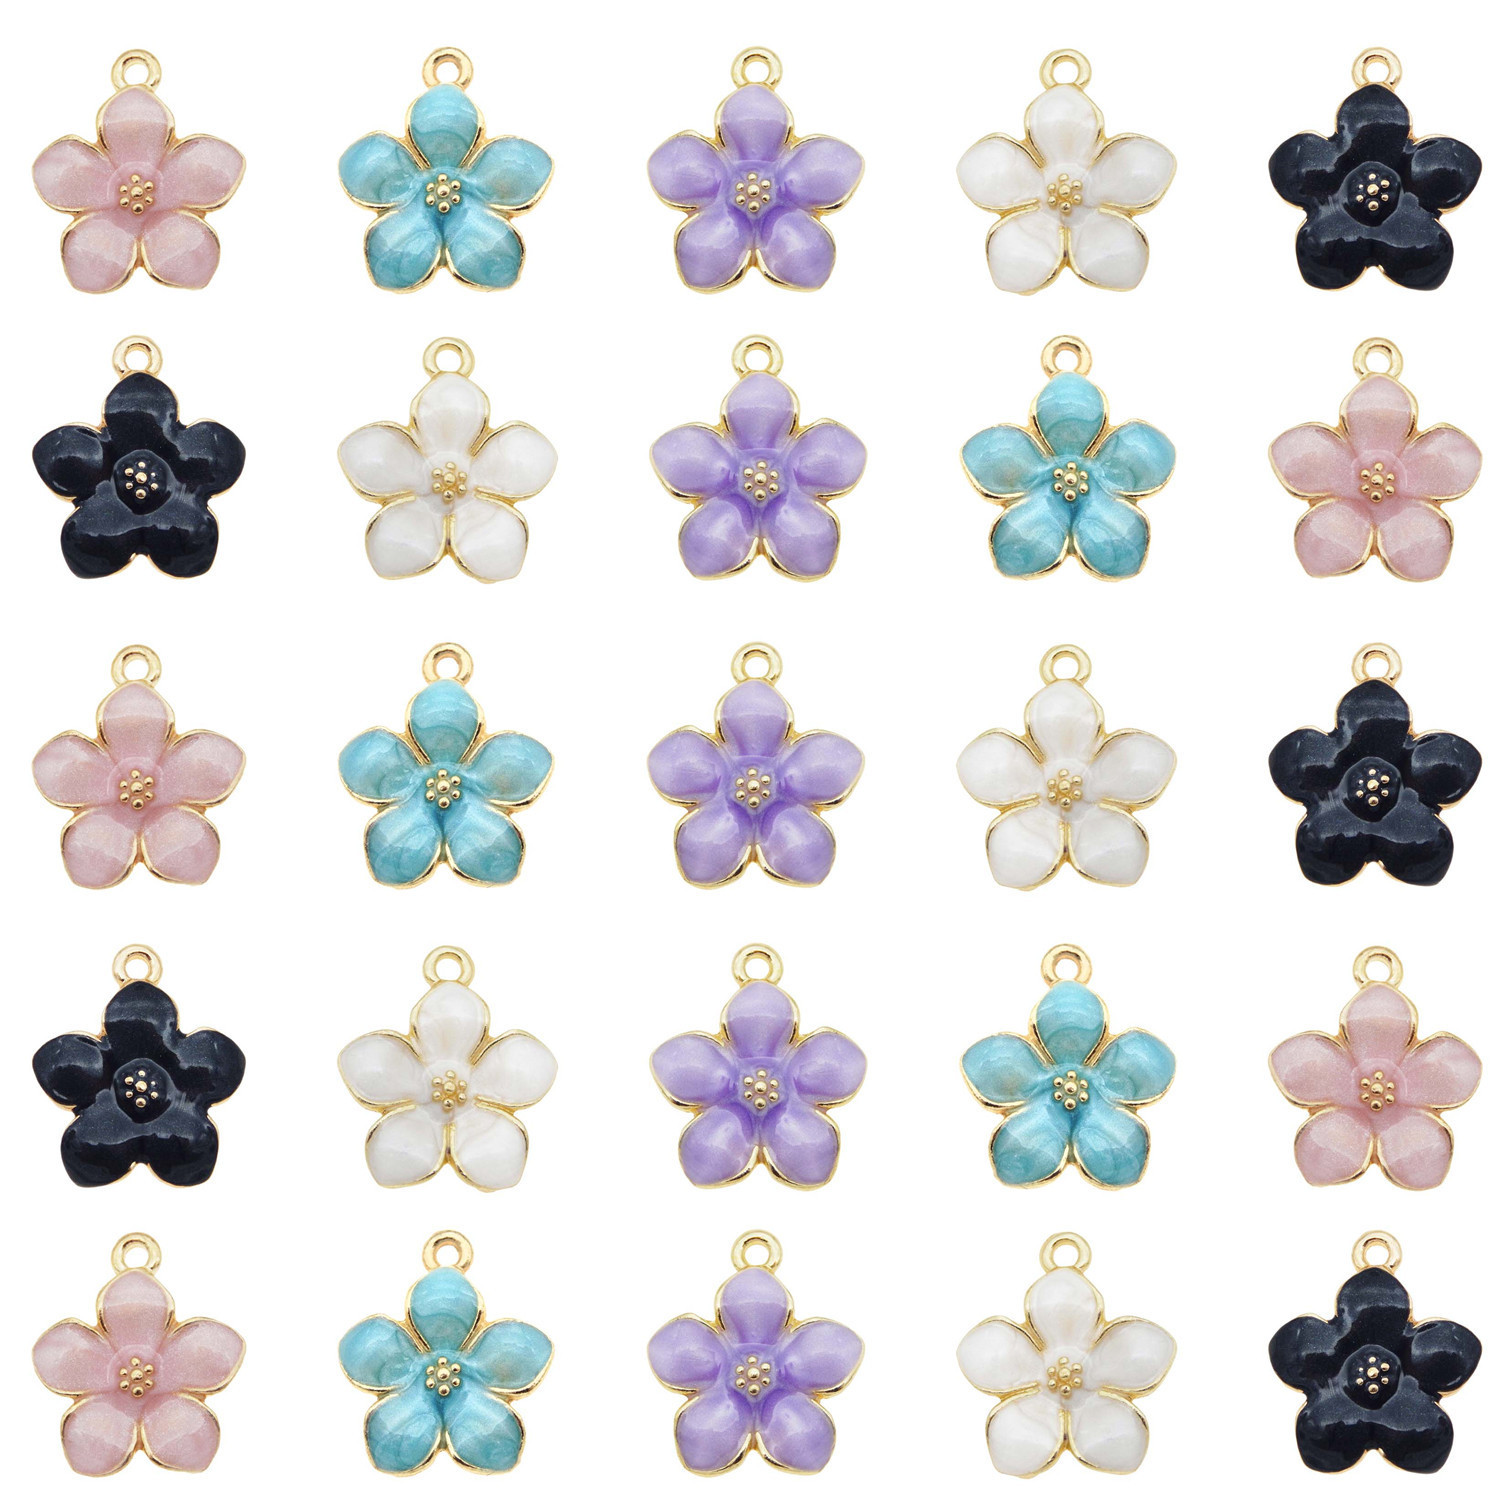 Wholesale Colorful 17x15mm Assorted Daisy Flower Charms Pendant Jewelry 20PCS